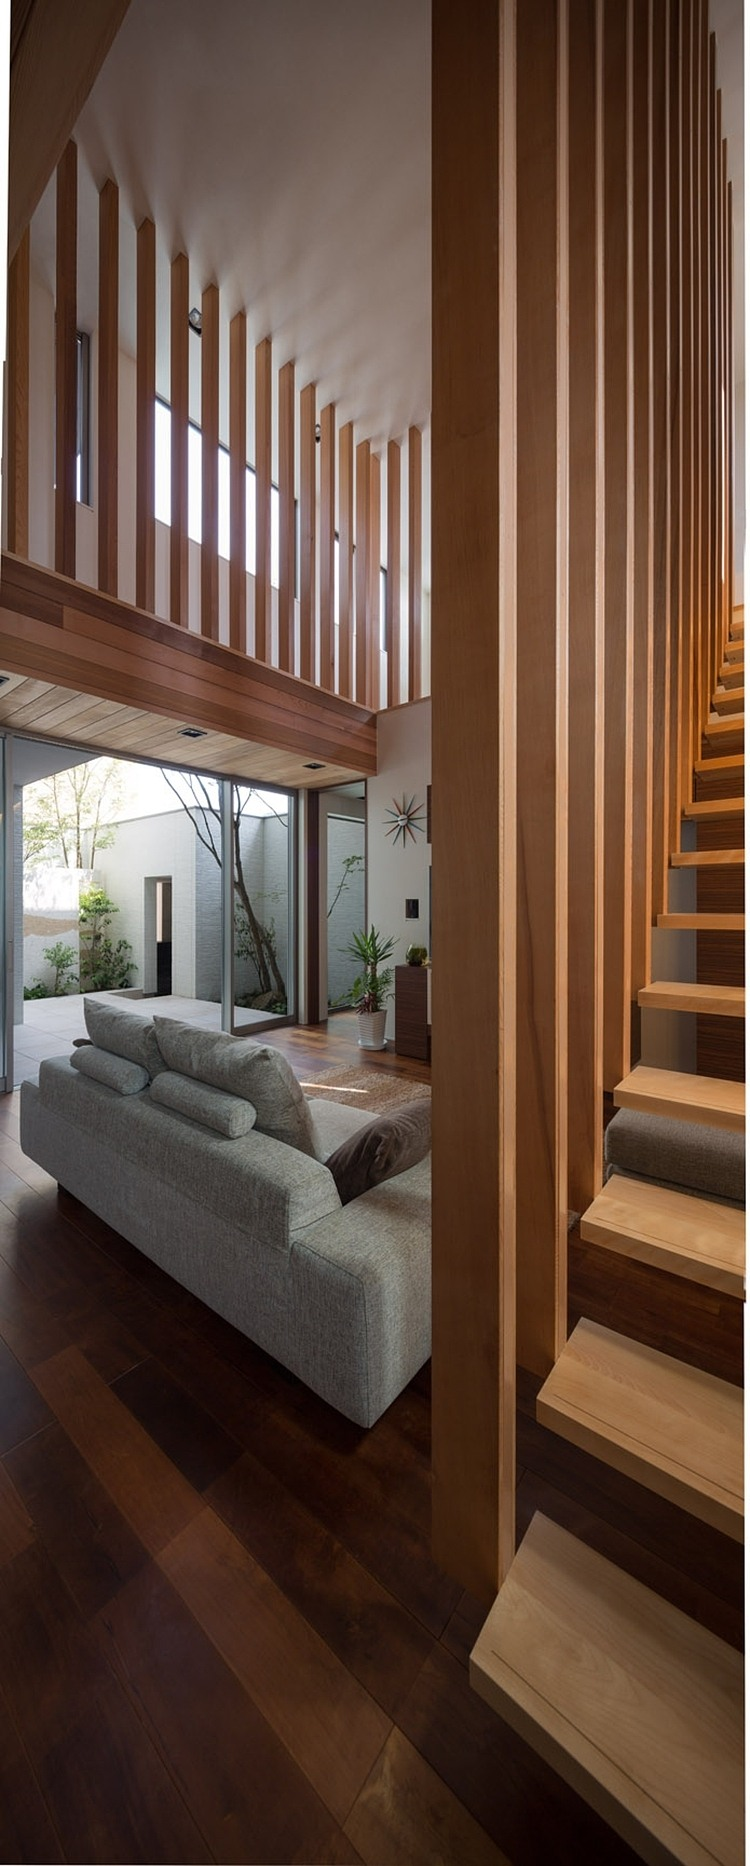 2-stories-modern-house (9)